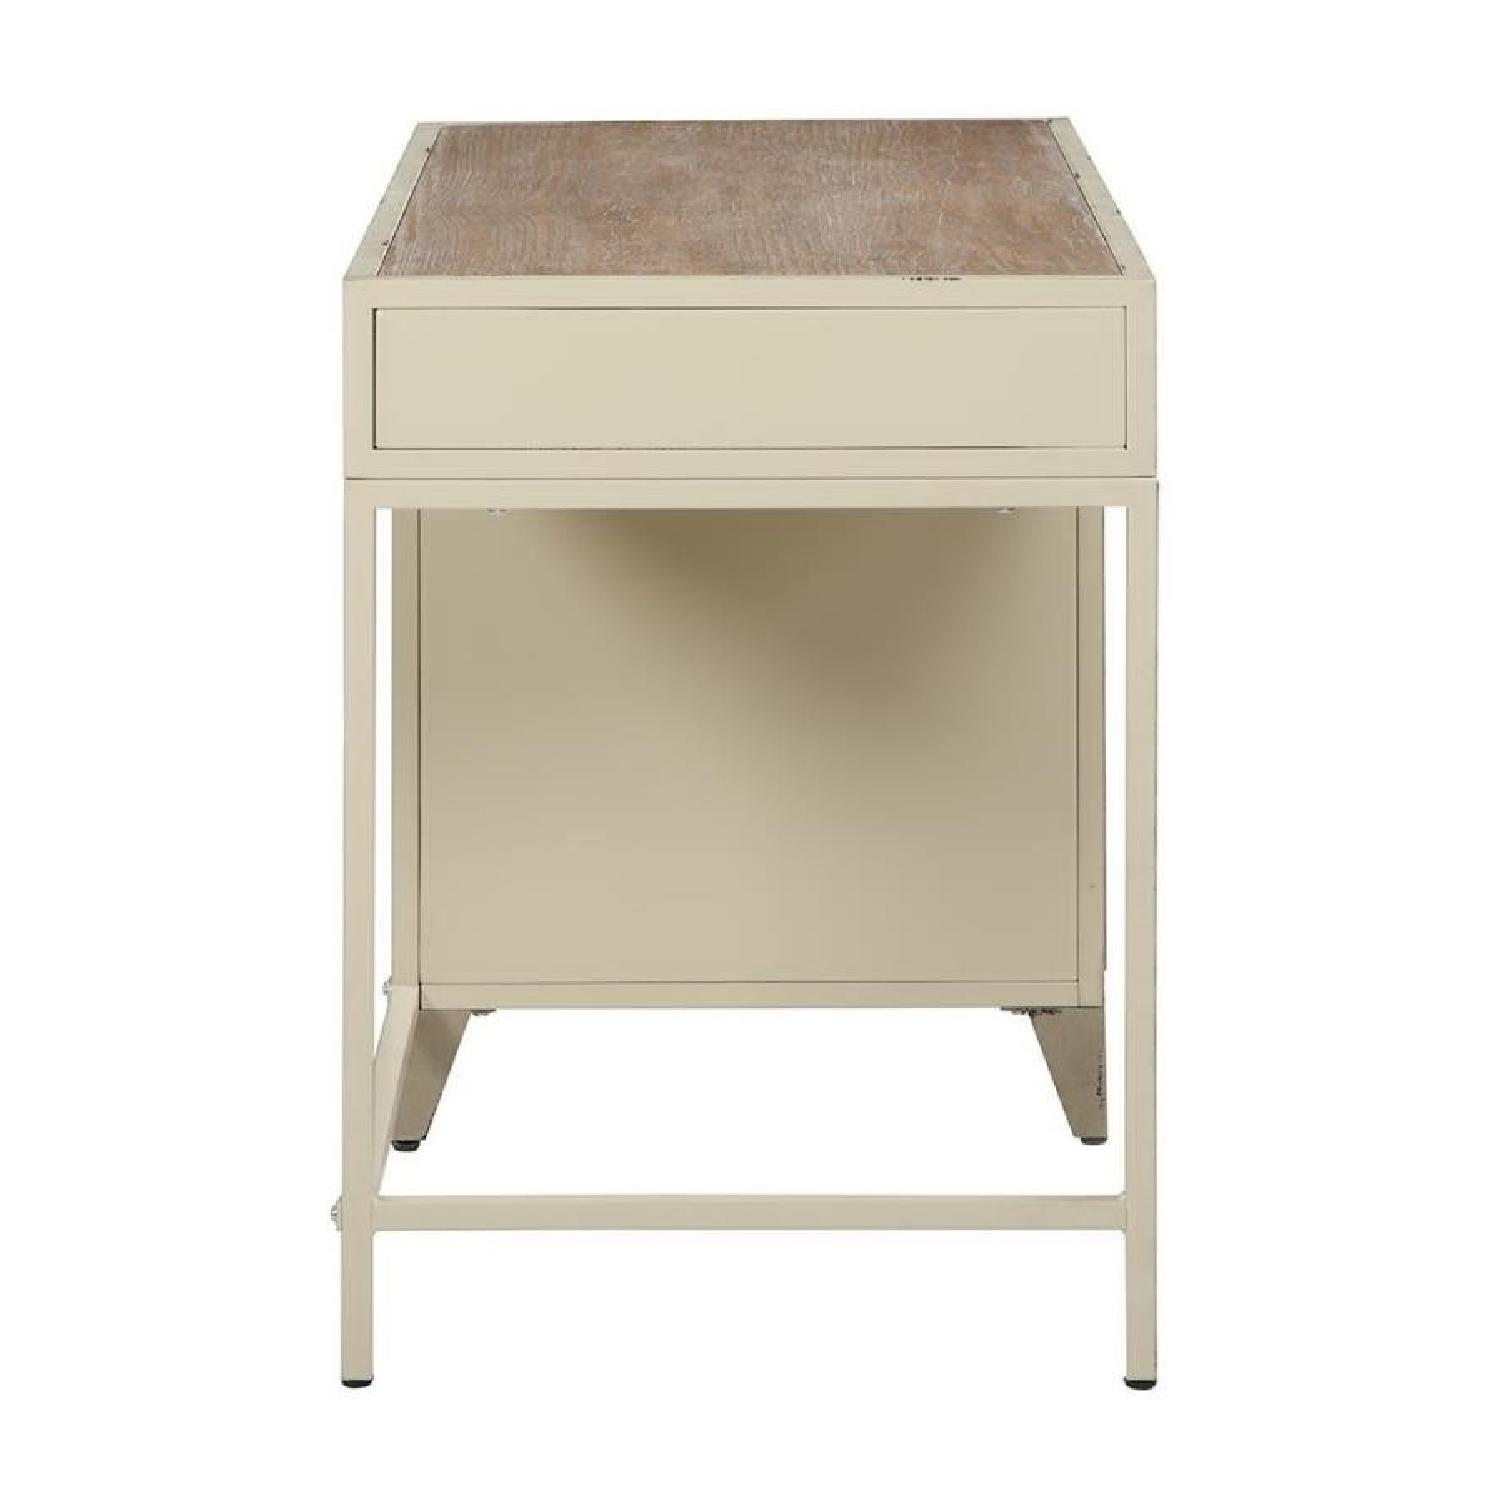 Industrial Style Writing Desk in Antique Eggshell Finish